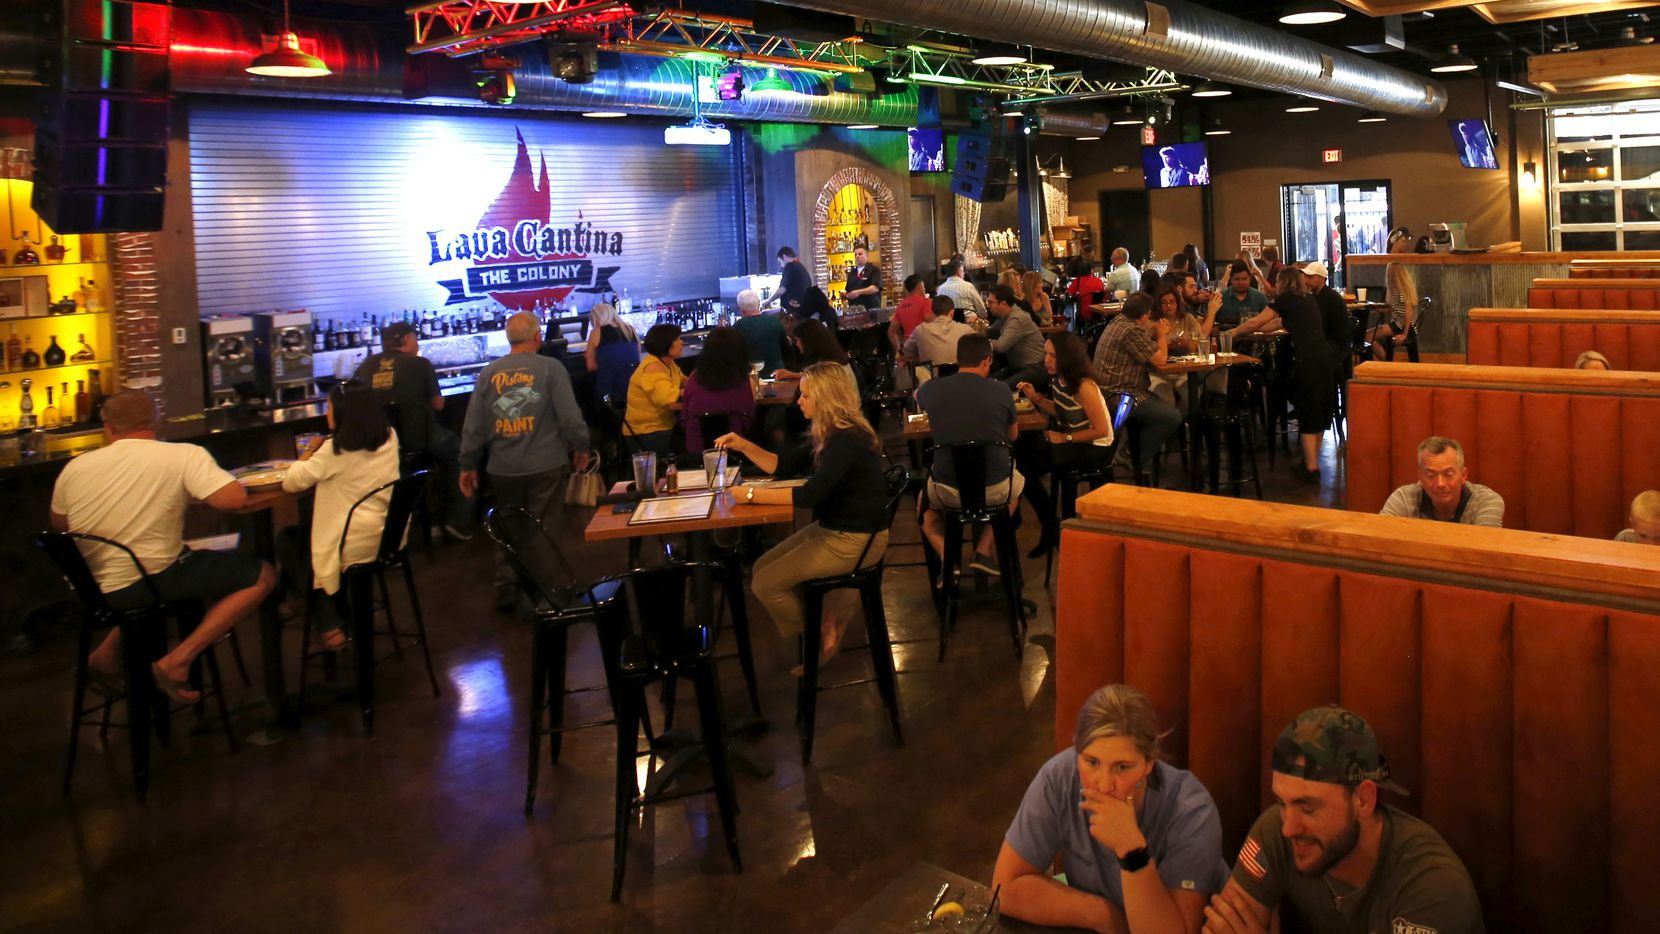 Lava Cantina in The Colony is an indoor-outdoor live music venue, restaurant and bar. It was shut down by TABC for being open after bars were mandated to close. Its owner was able to successfully prove to TABC that it should be classified as a restaurant.